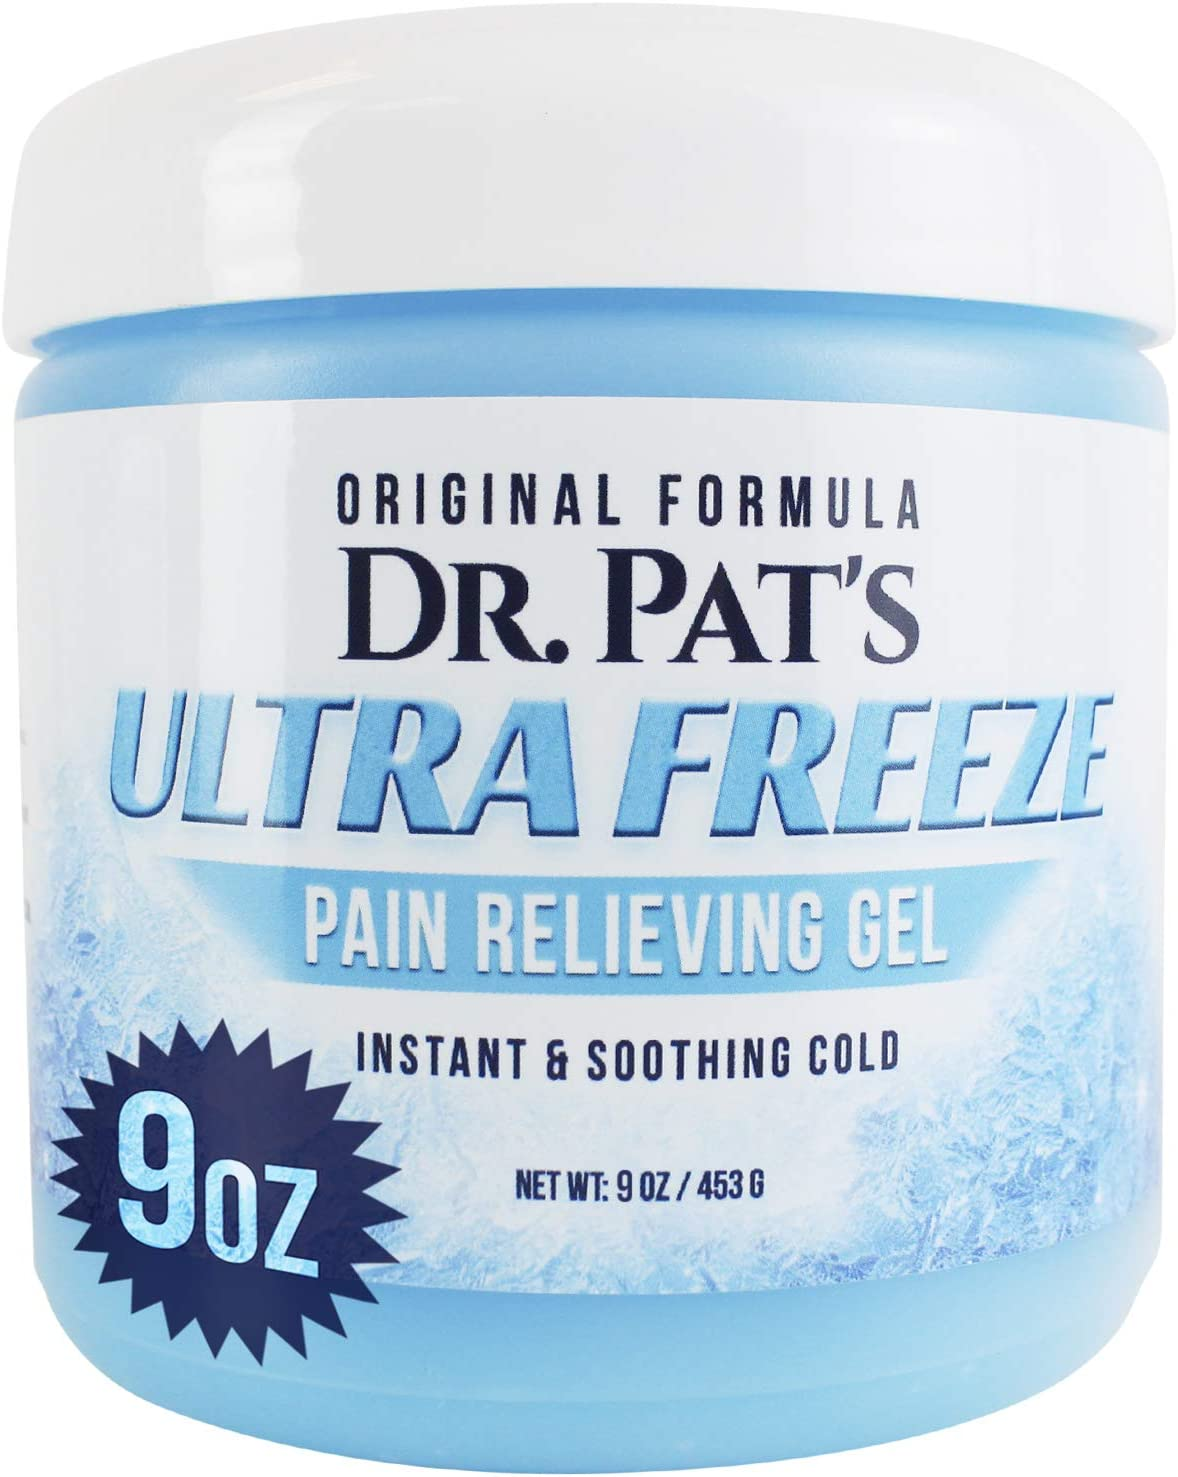 Dr Pat's Ultra Freeze Pain Relief Cream - Muscle RubGel for Arthritis, Neuropathy, Foot and Joint - Cooling Sports Massage for Back, Shoulder and Knee - Topical Analgesic Menthol for Neck and Body